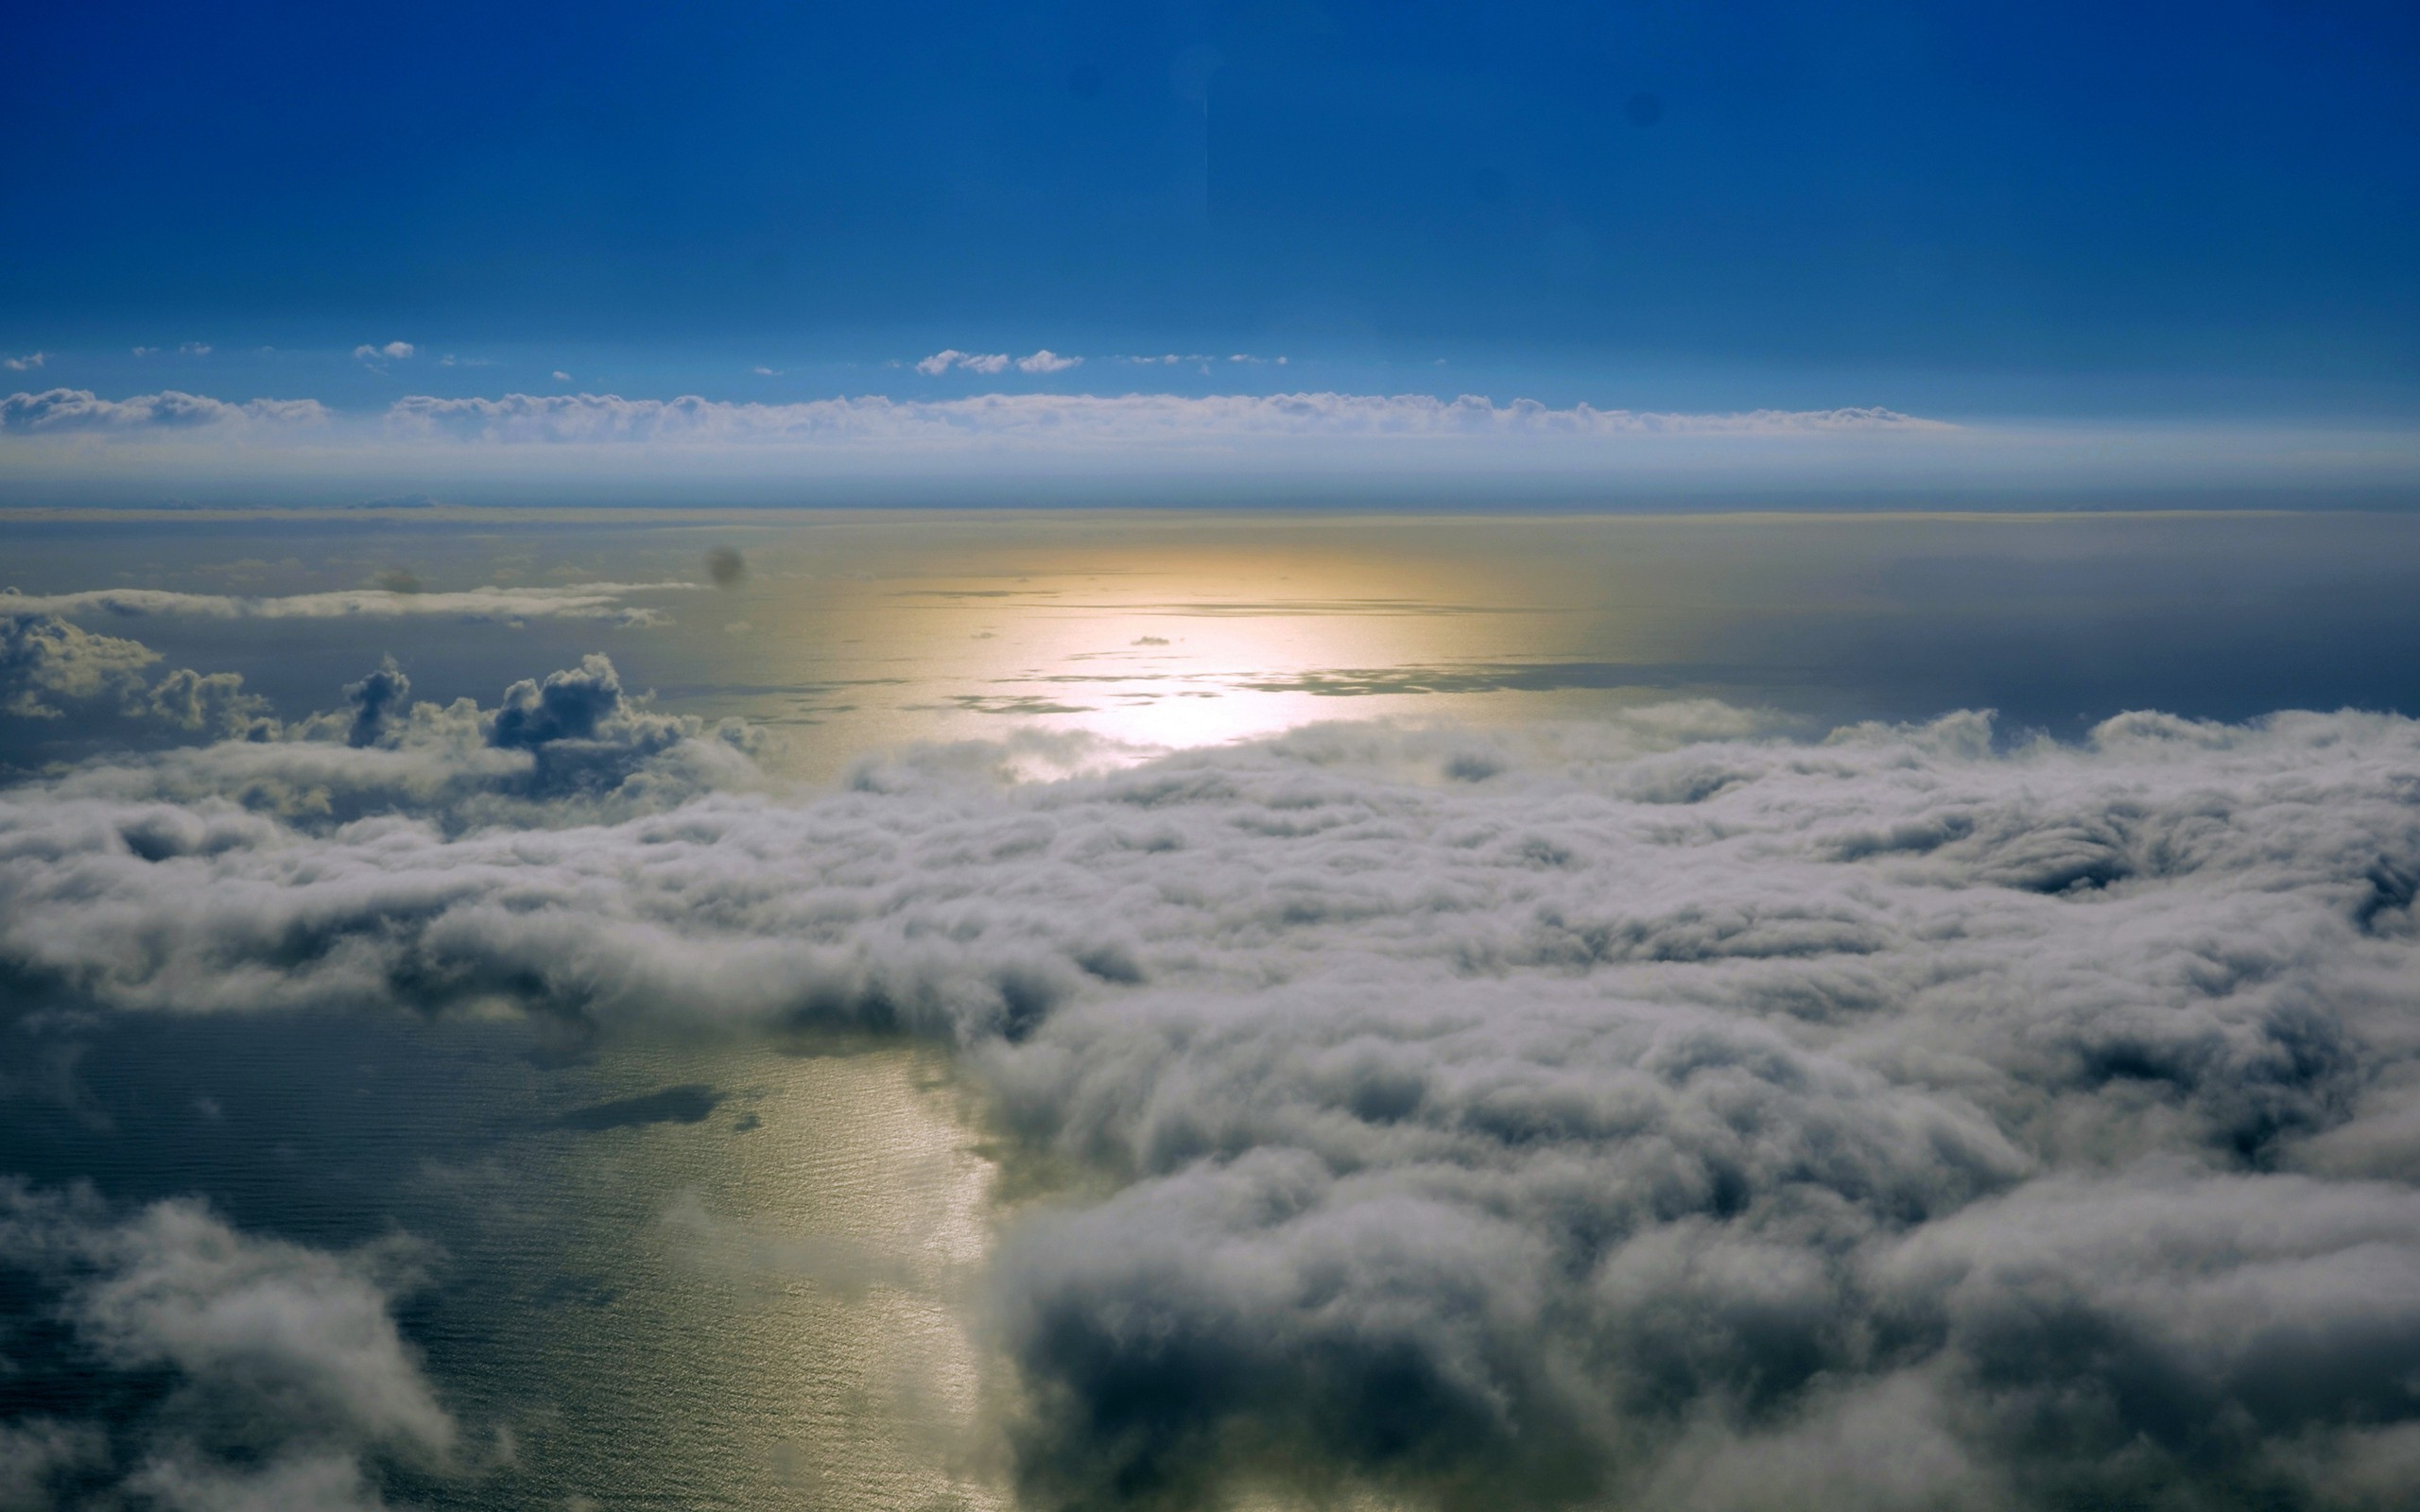 Res: 2560x1600, landscape, Sea, Clouds, Aerial View Wallpapers HD / Desktop and Mobile  Backgrounds